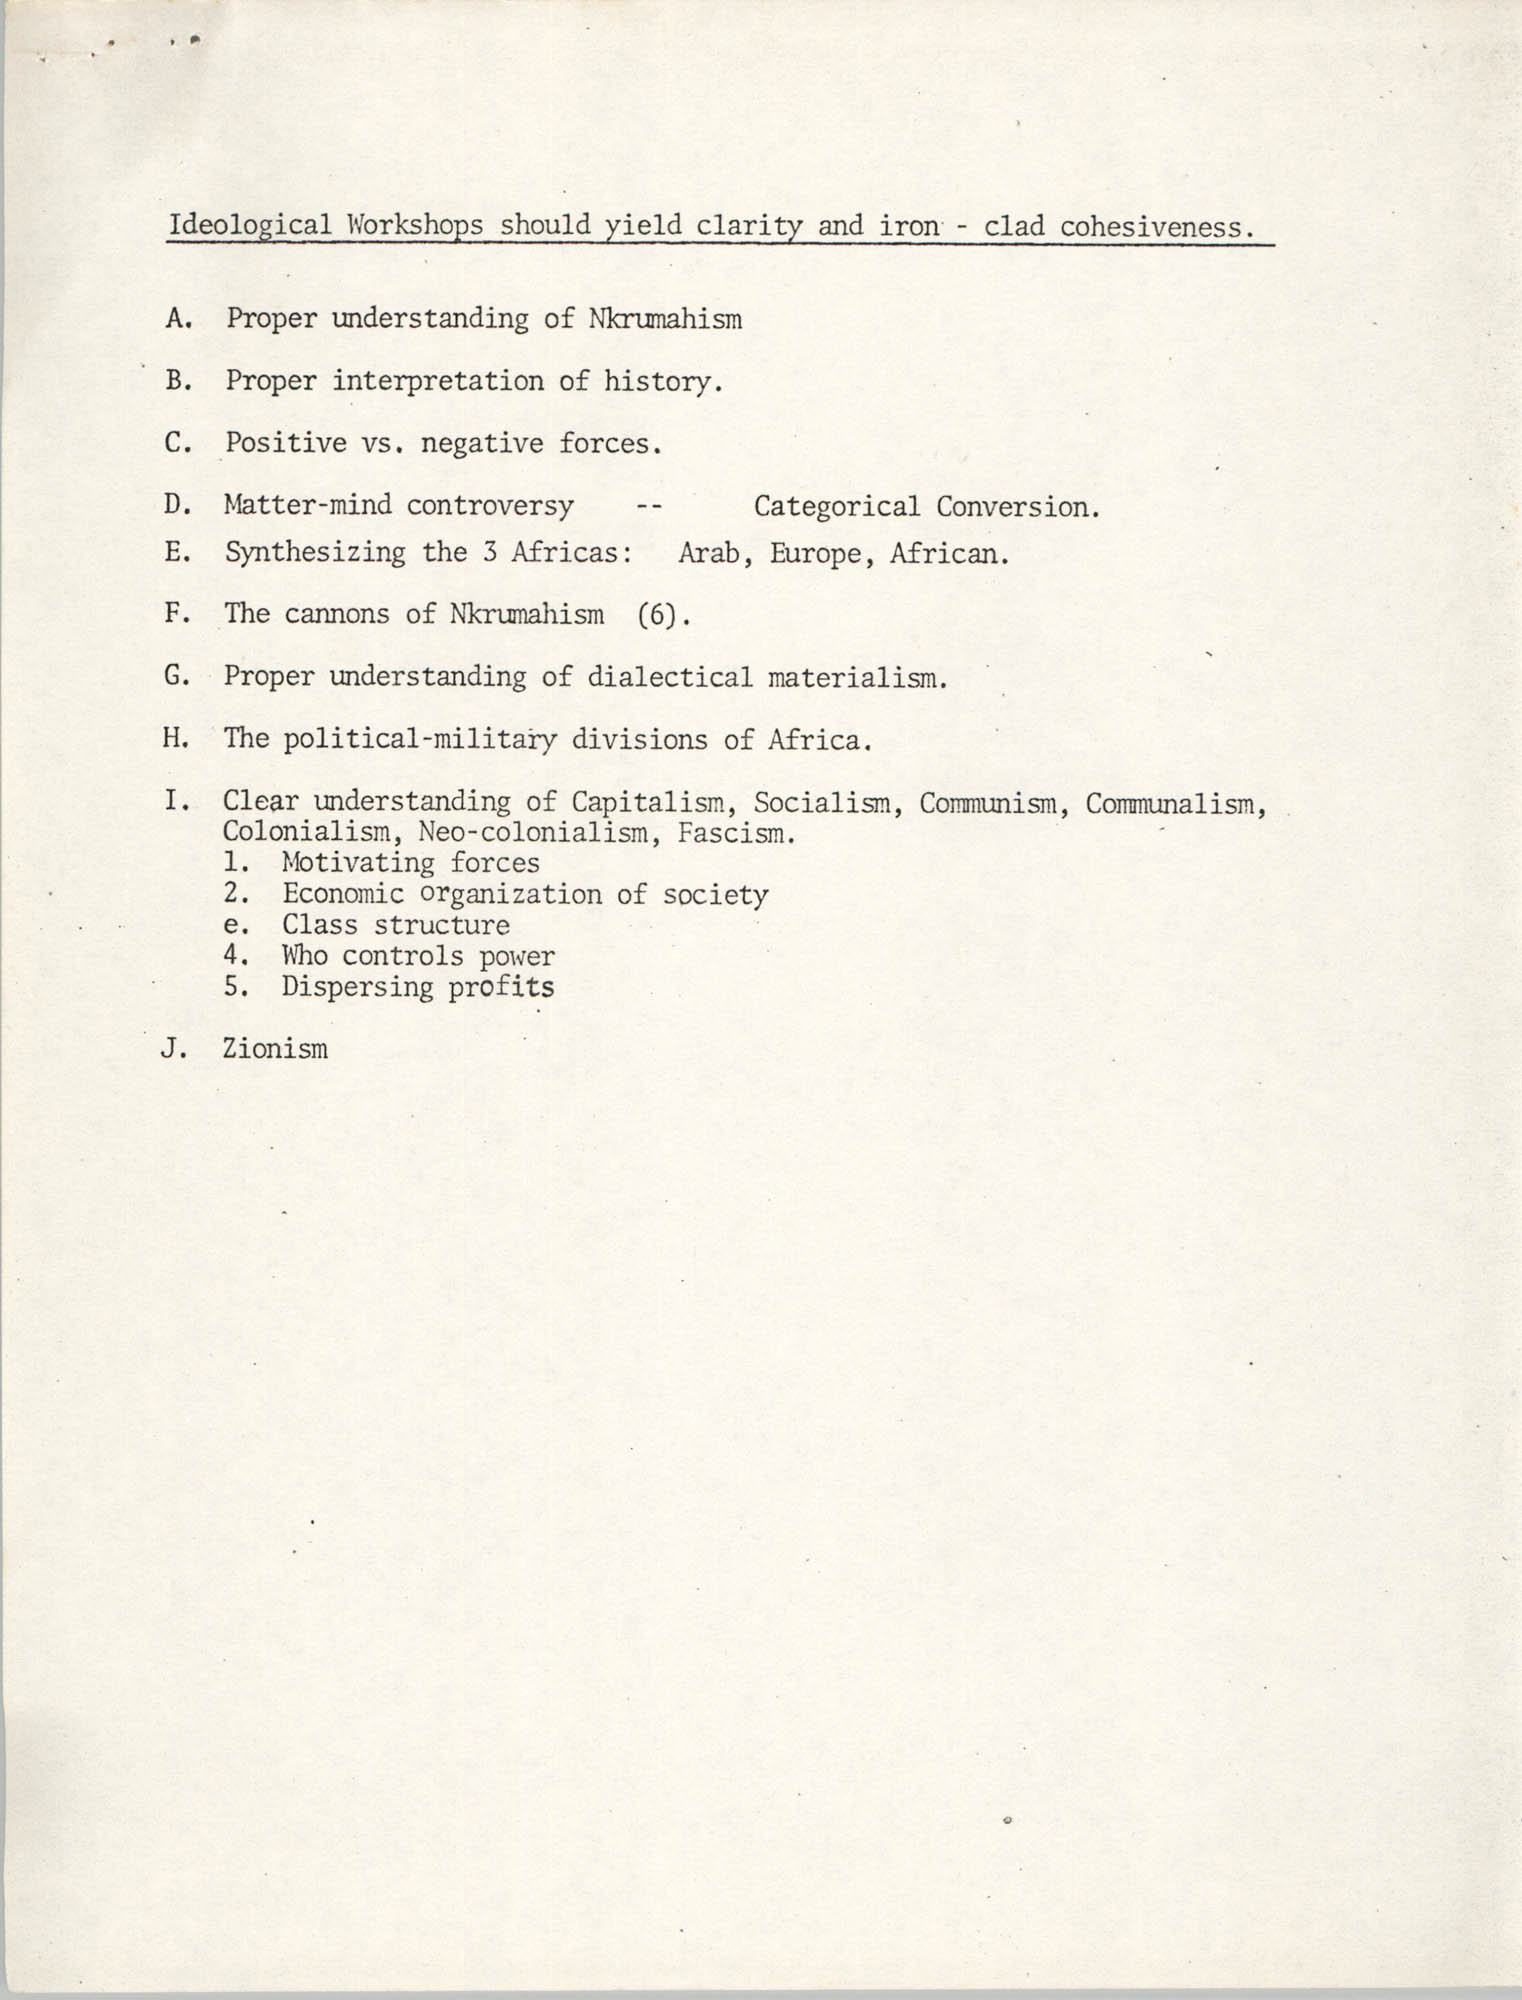 First Planning Committee Meeting, Southeastern Regional Planning Committee, Page G.2